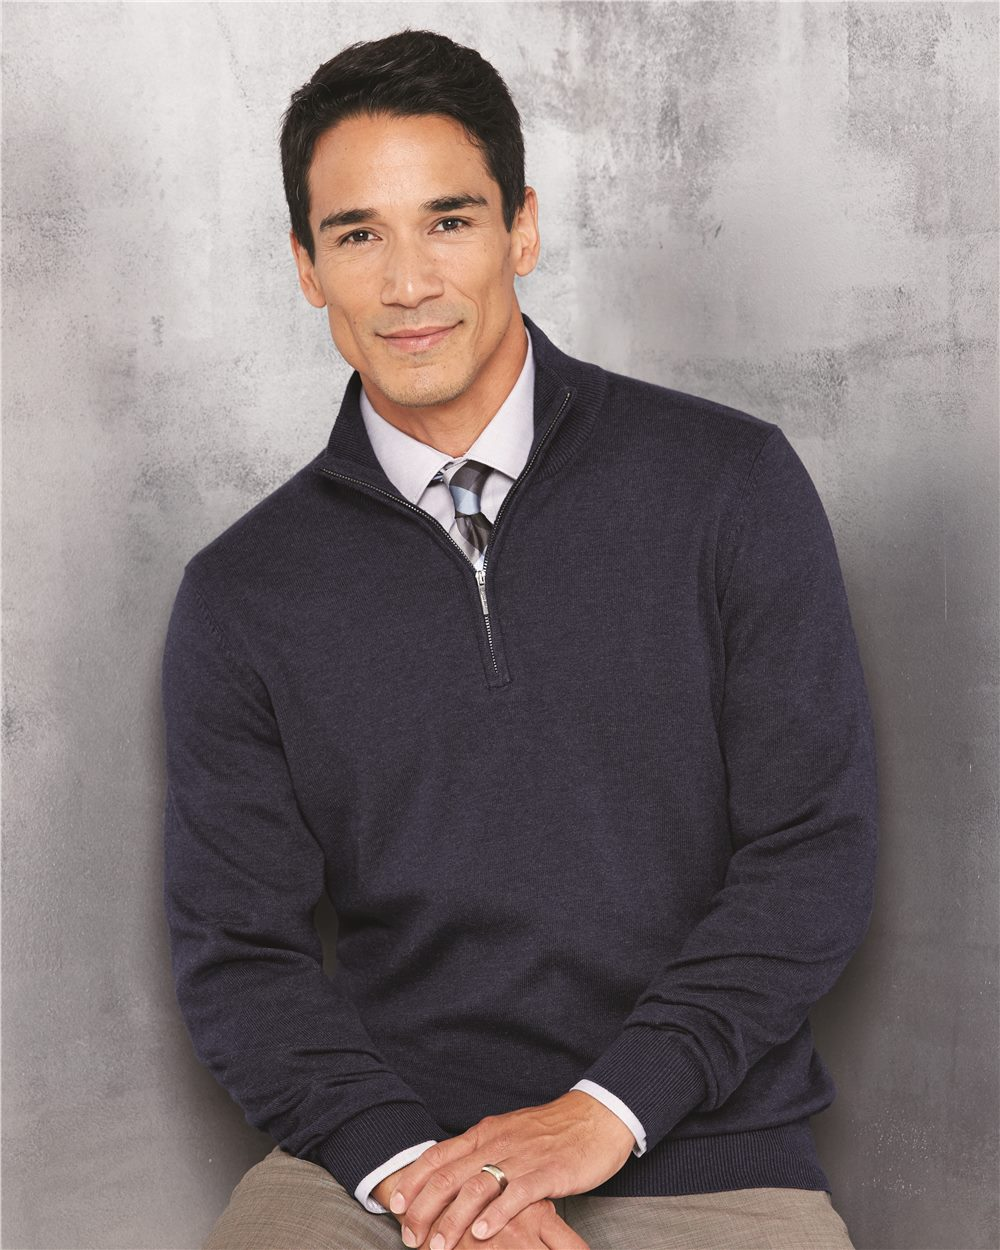 8659bf76f3f46f Quarter-Zip Sweater - 13VS005 | Gateway Promotions Group